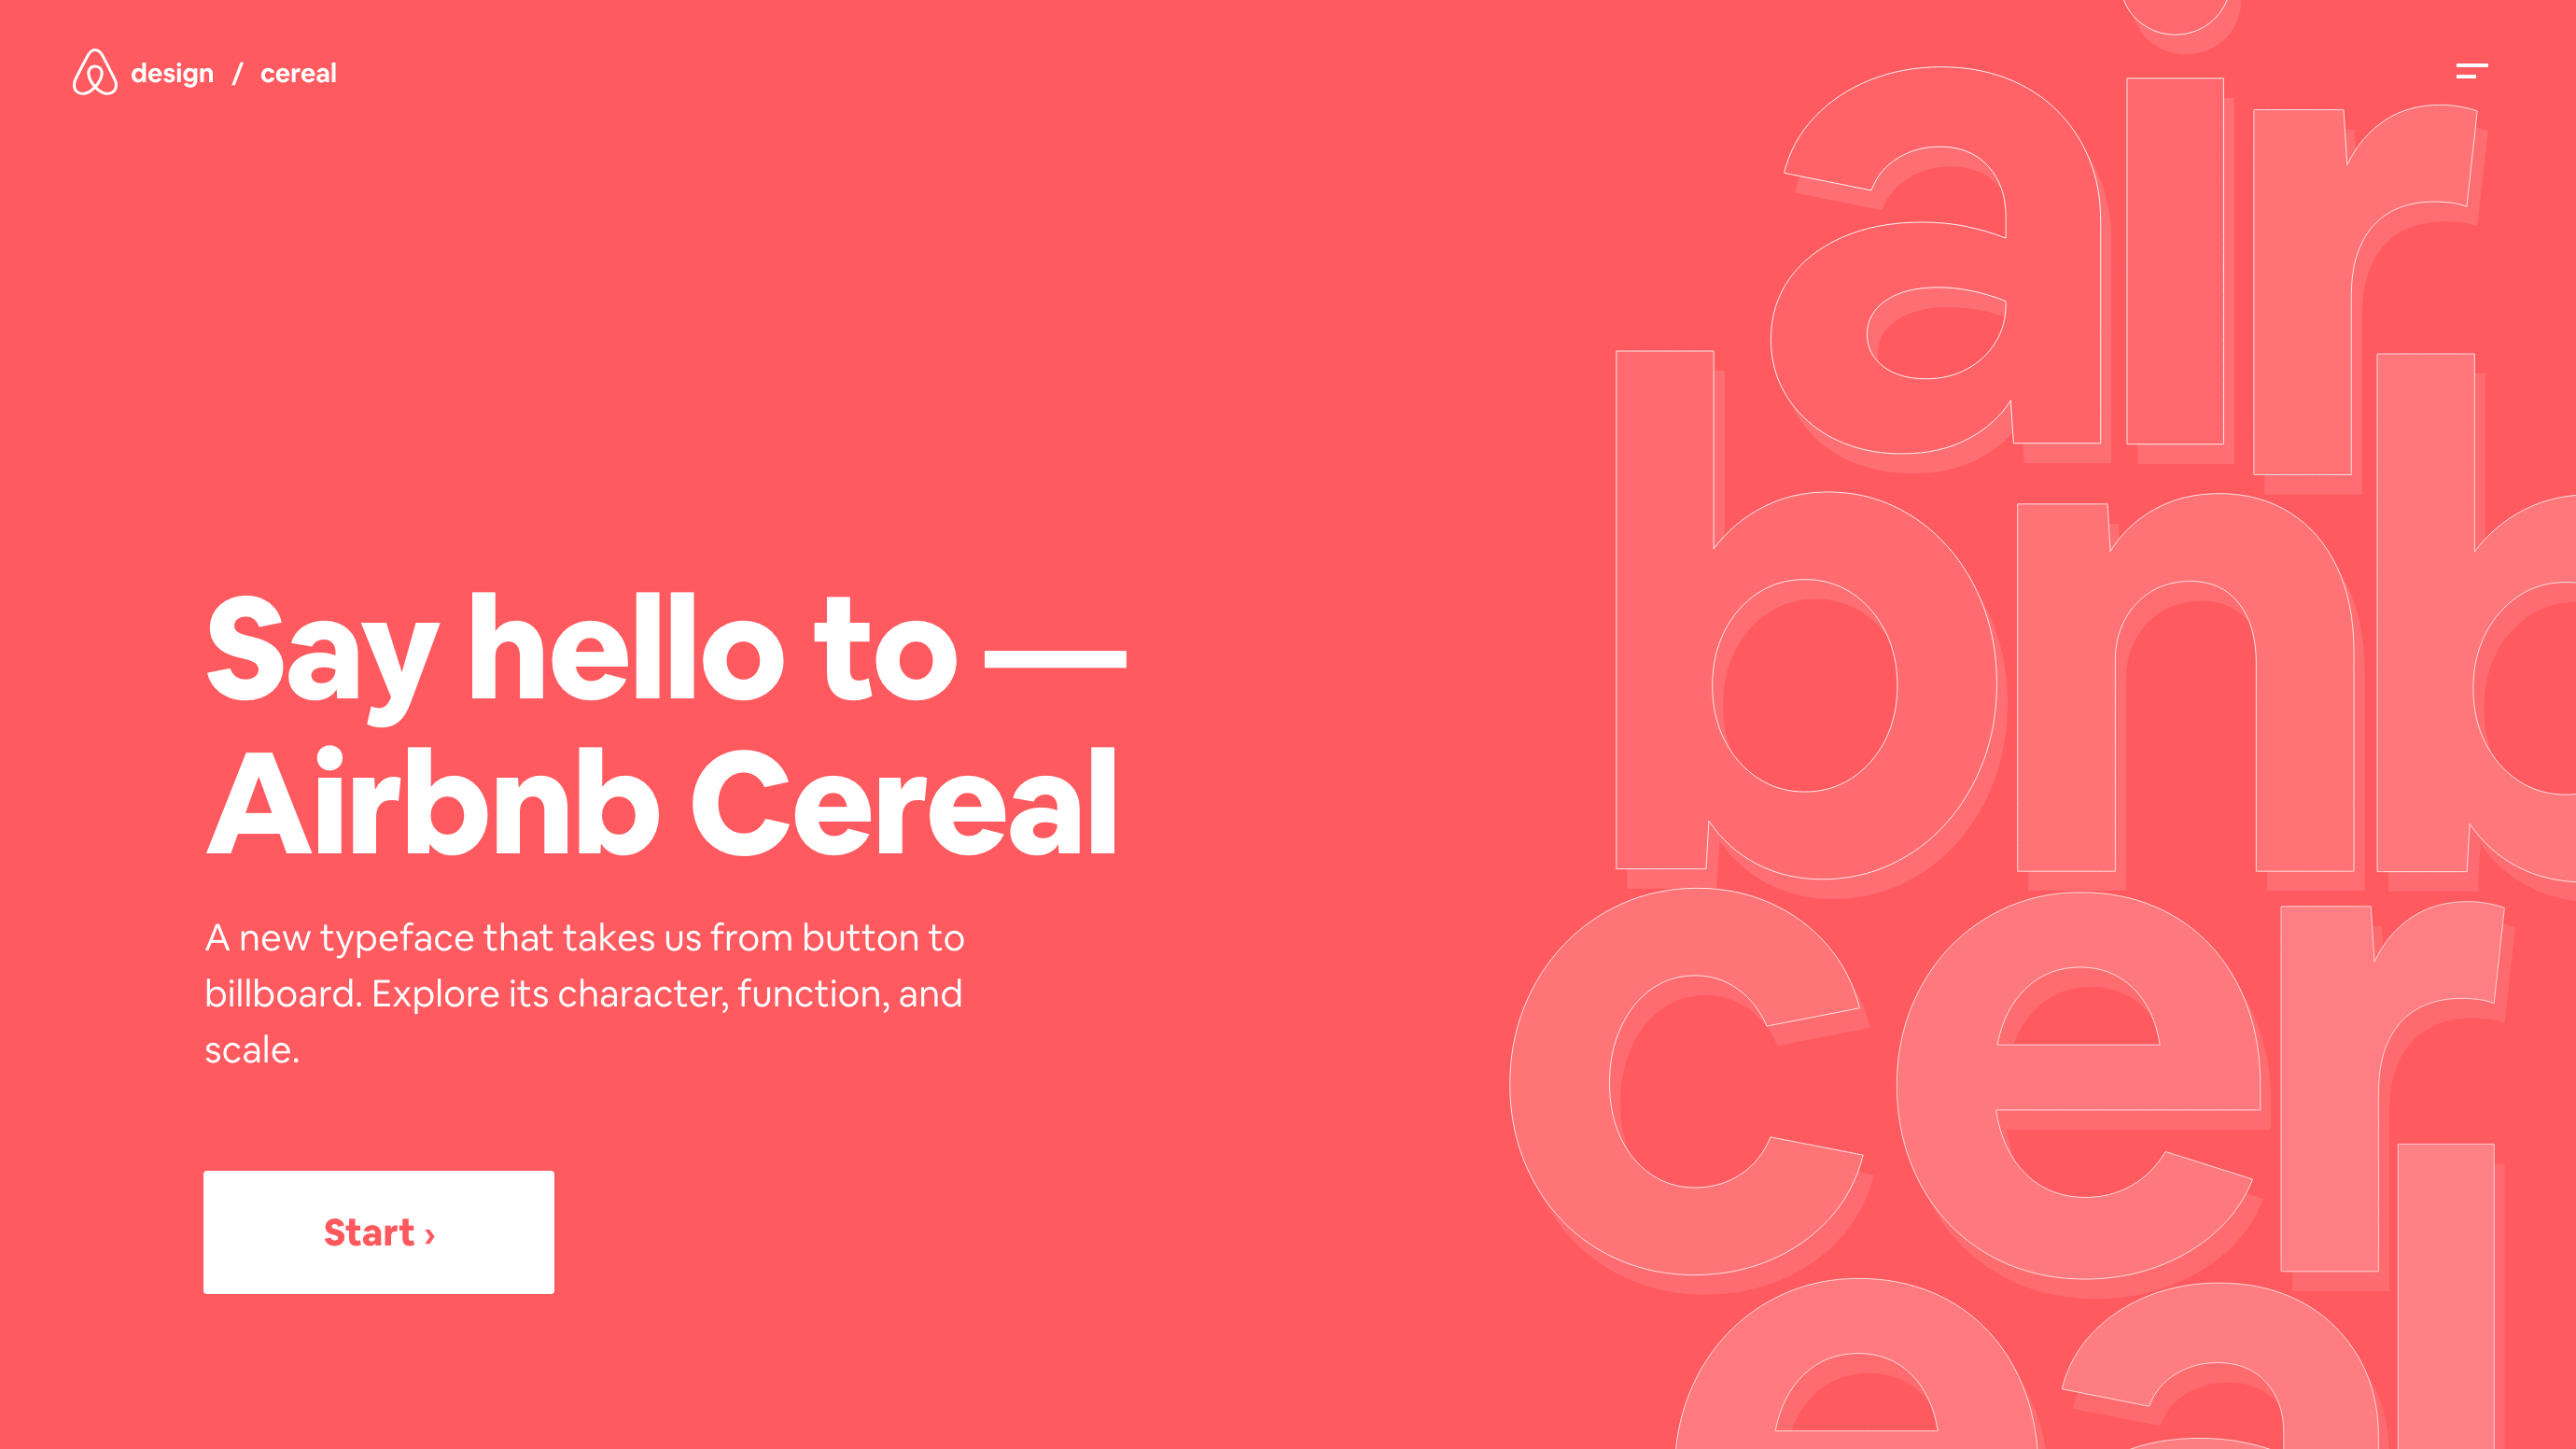 Airbnb Cereal site